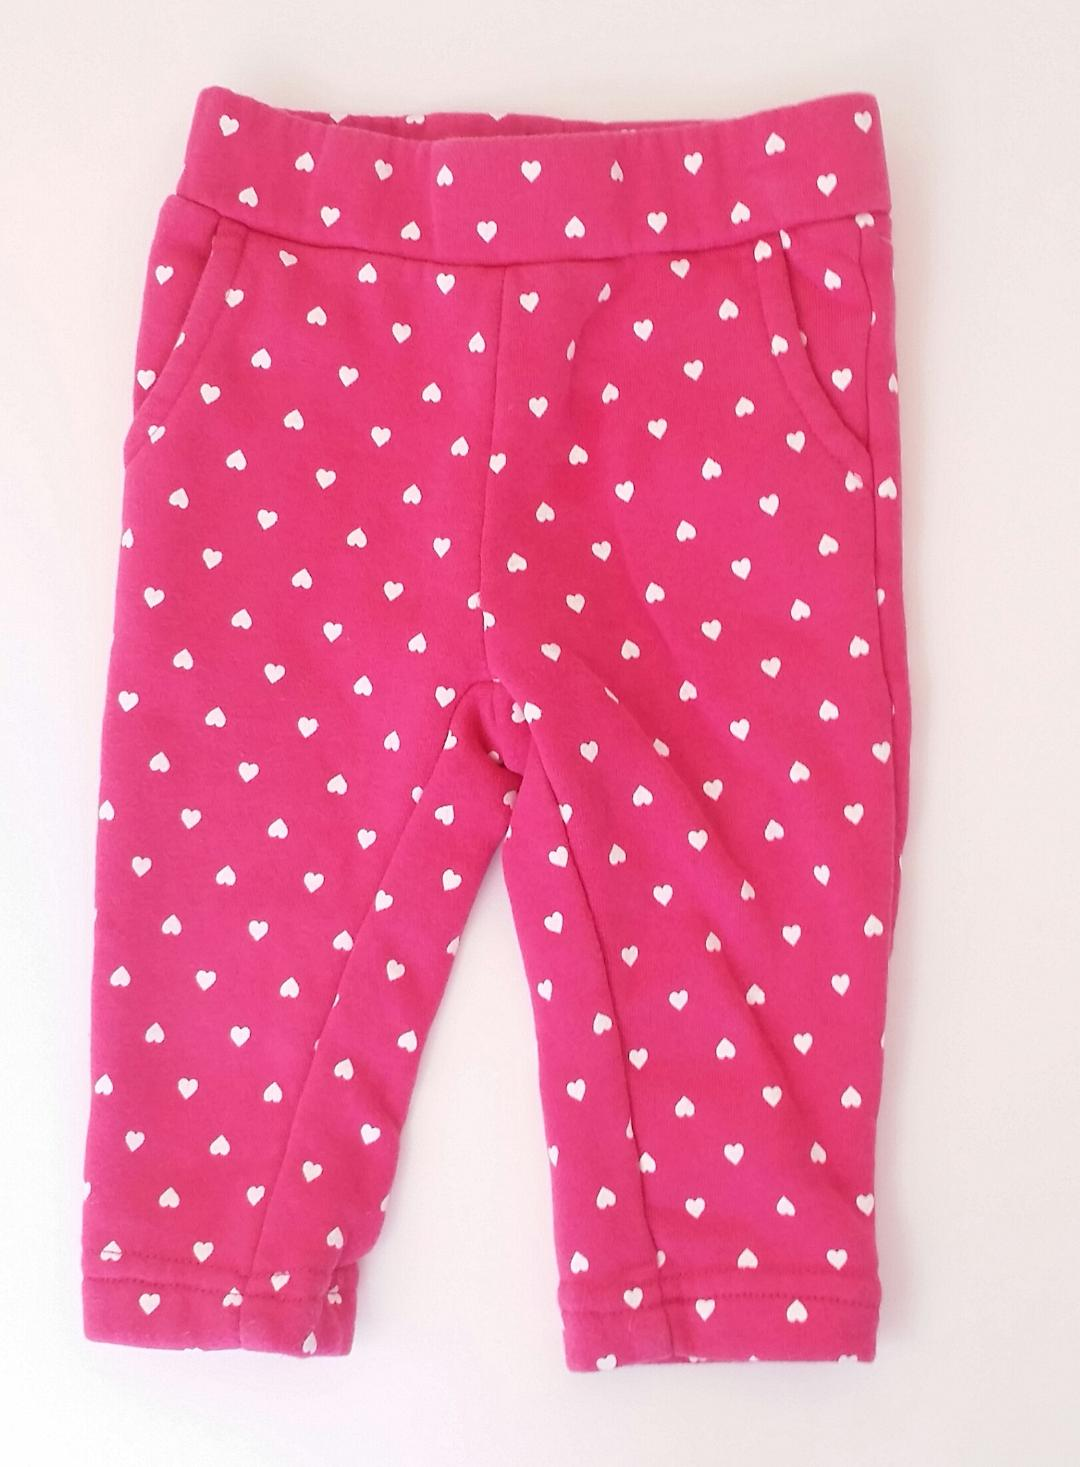 Gap-6-12-MONTHS-Heart-Print-Pants_2118401A.jpg